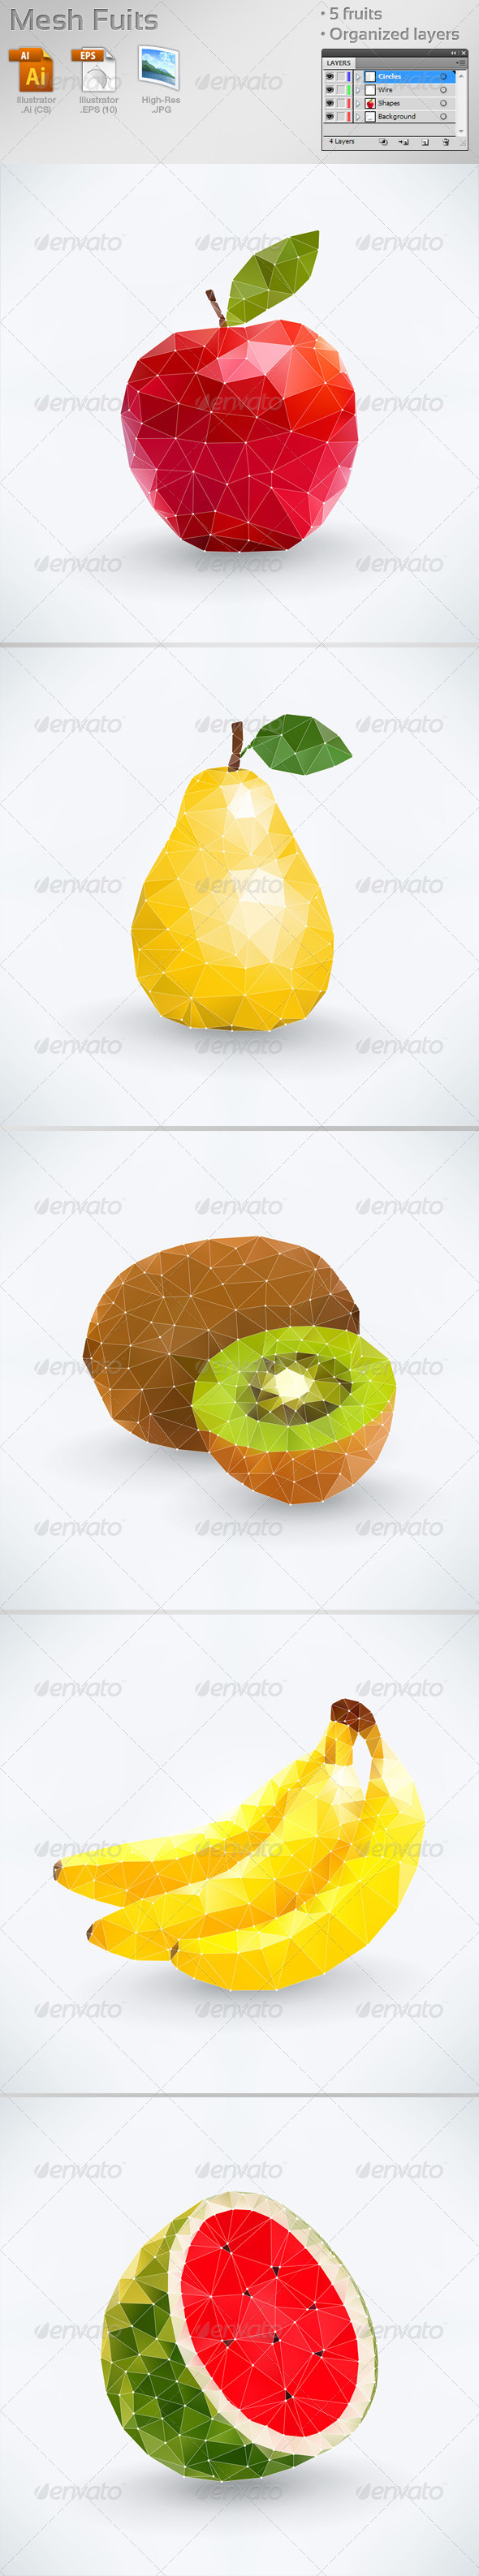 GraphicRiver Mesh Fruits 8283107